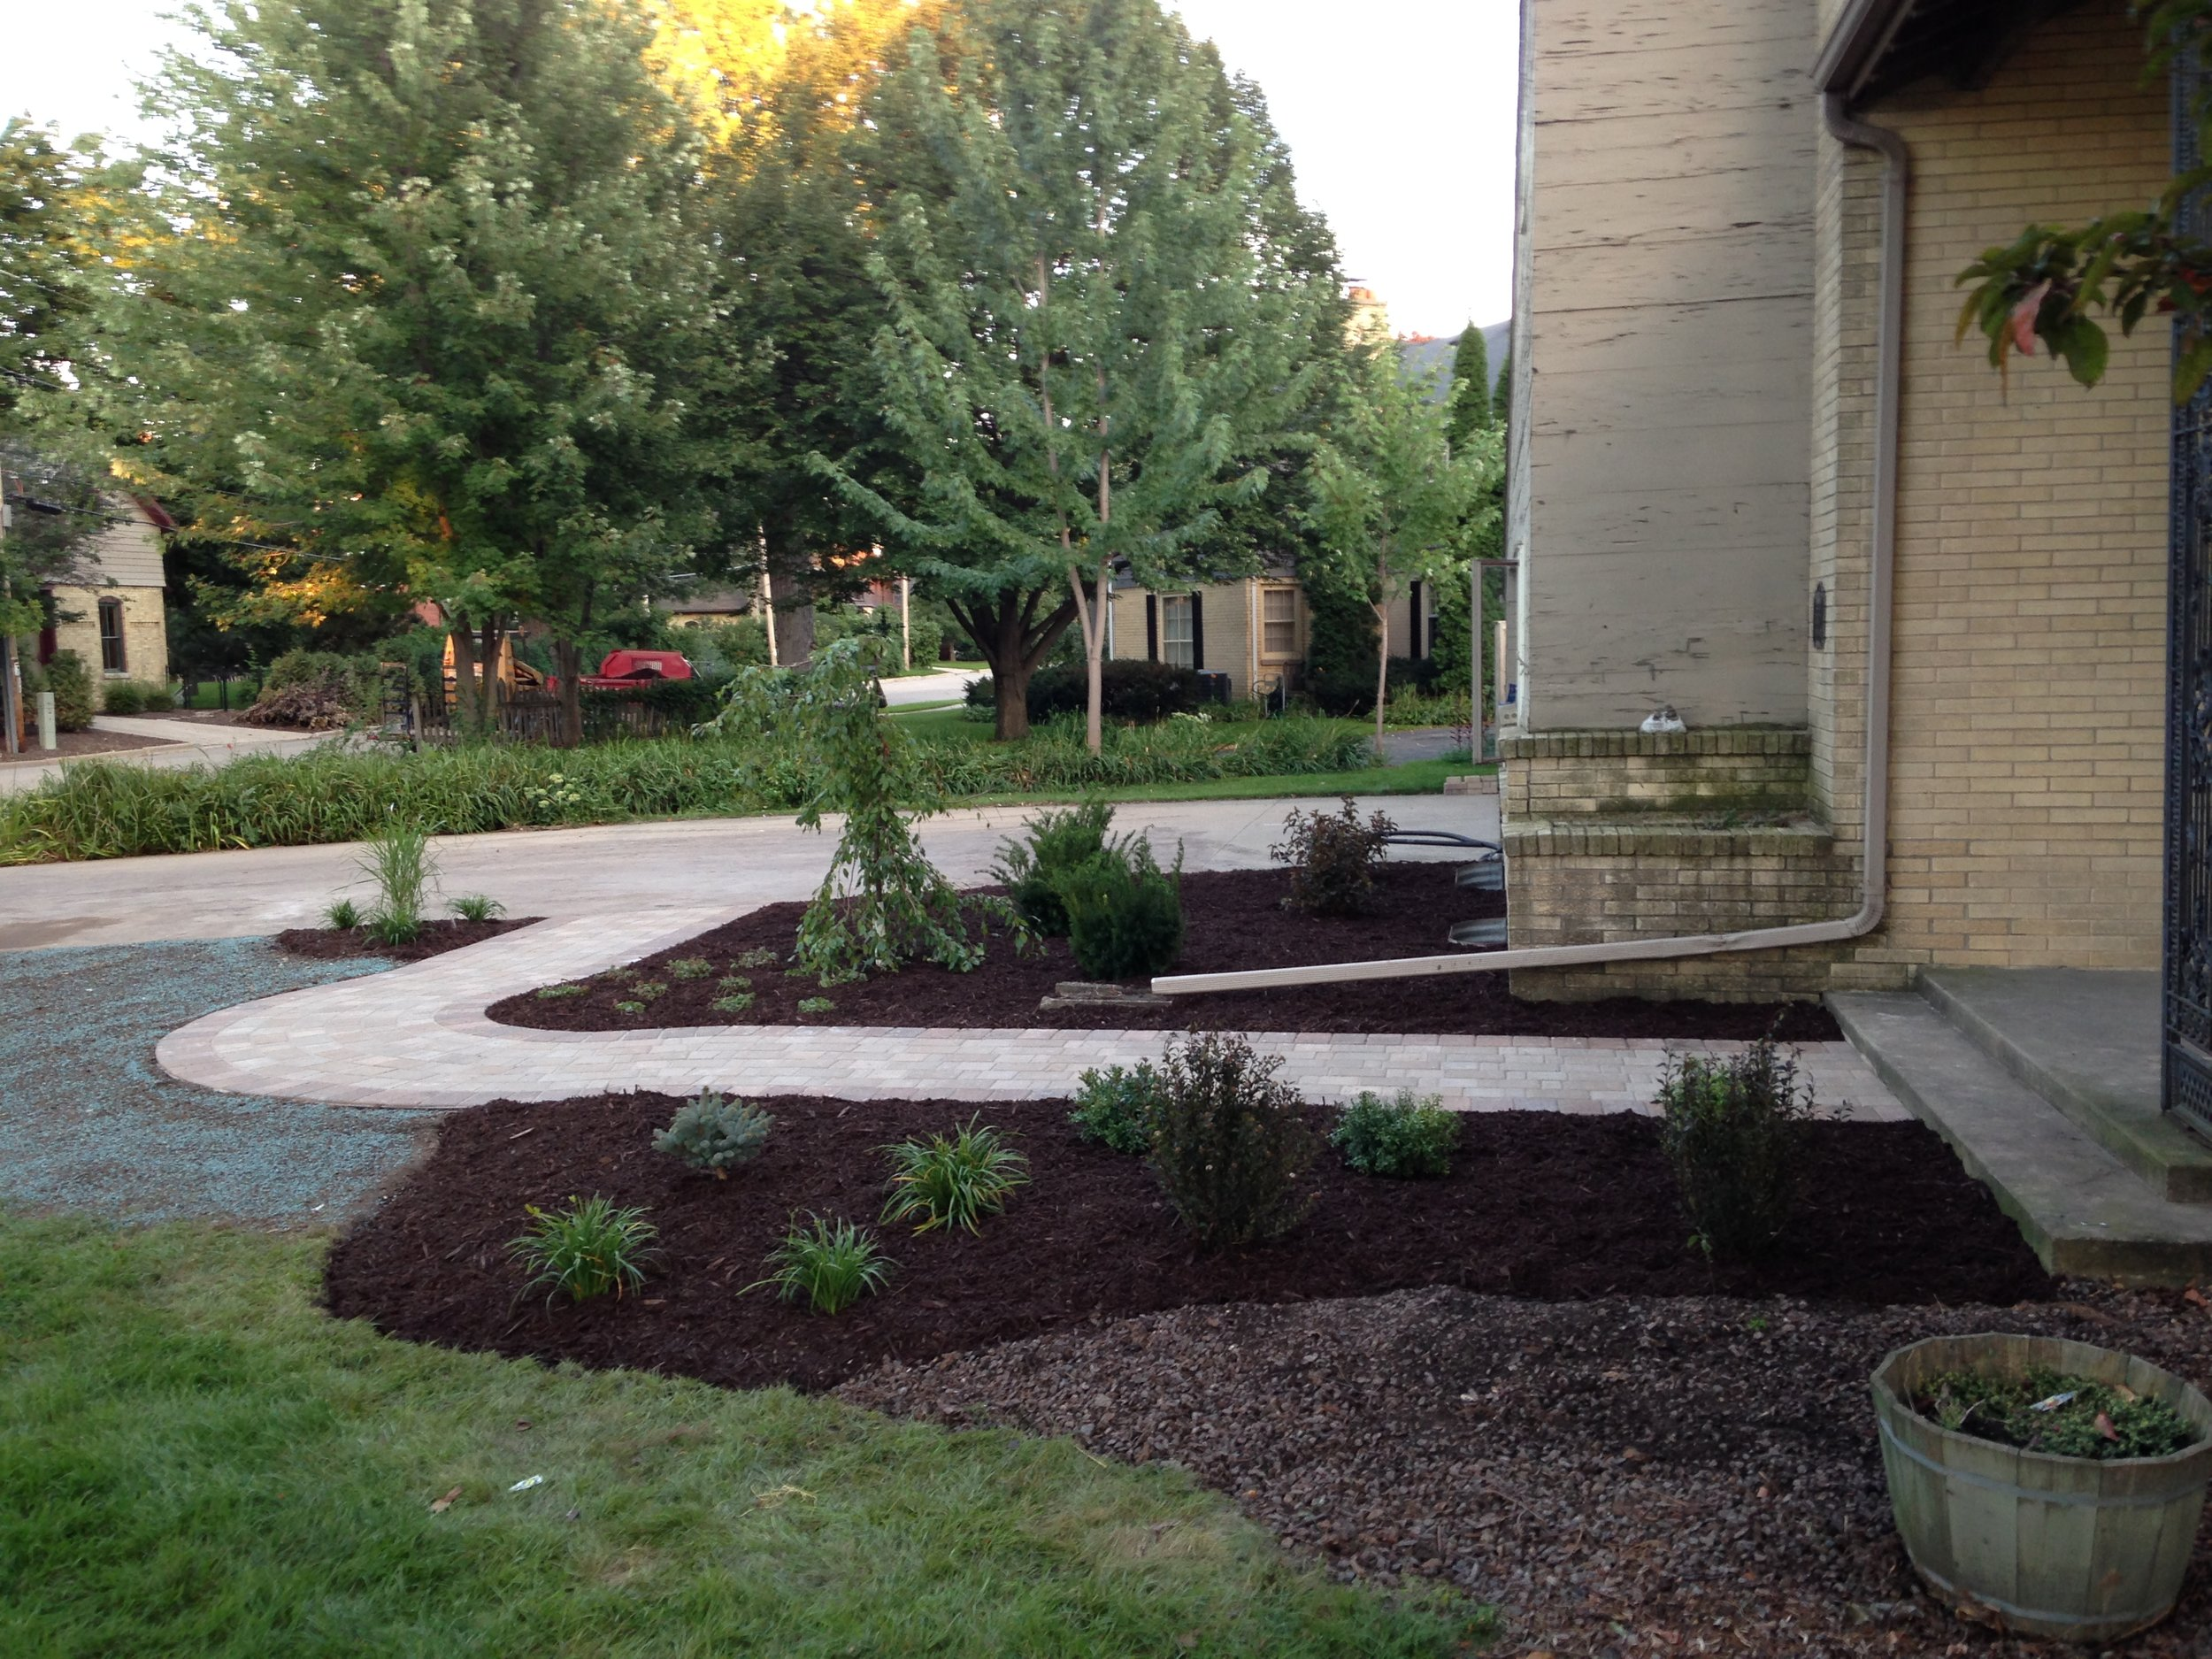 Landscape Services - Tree and Shrub InstallationPerennial Landscape BedsTree RemovalWater Gardens and Ponds (all sizes)Landscape Lighting